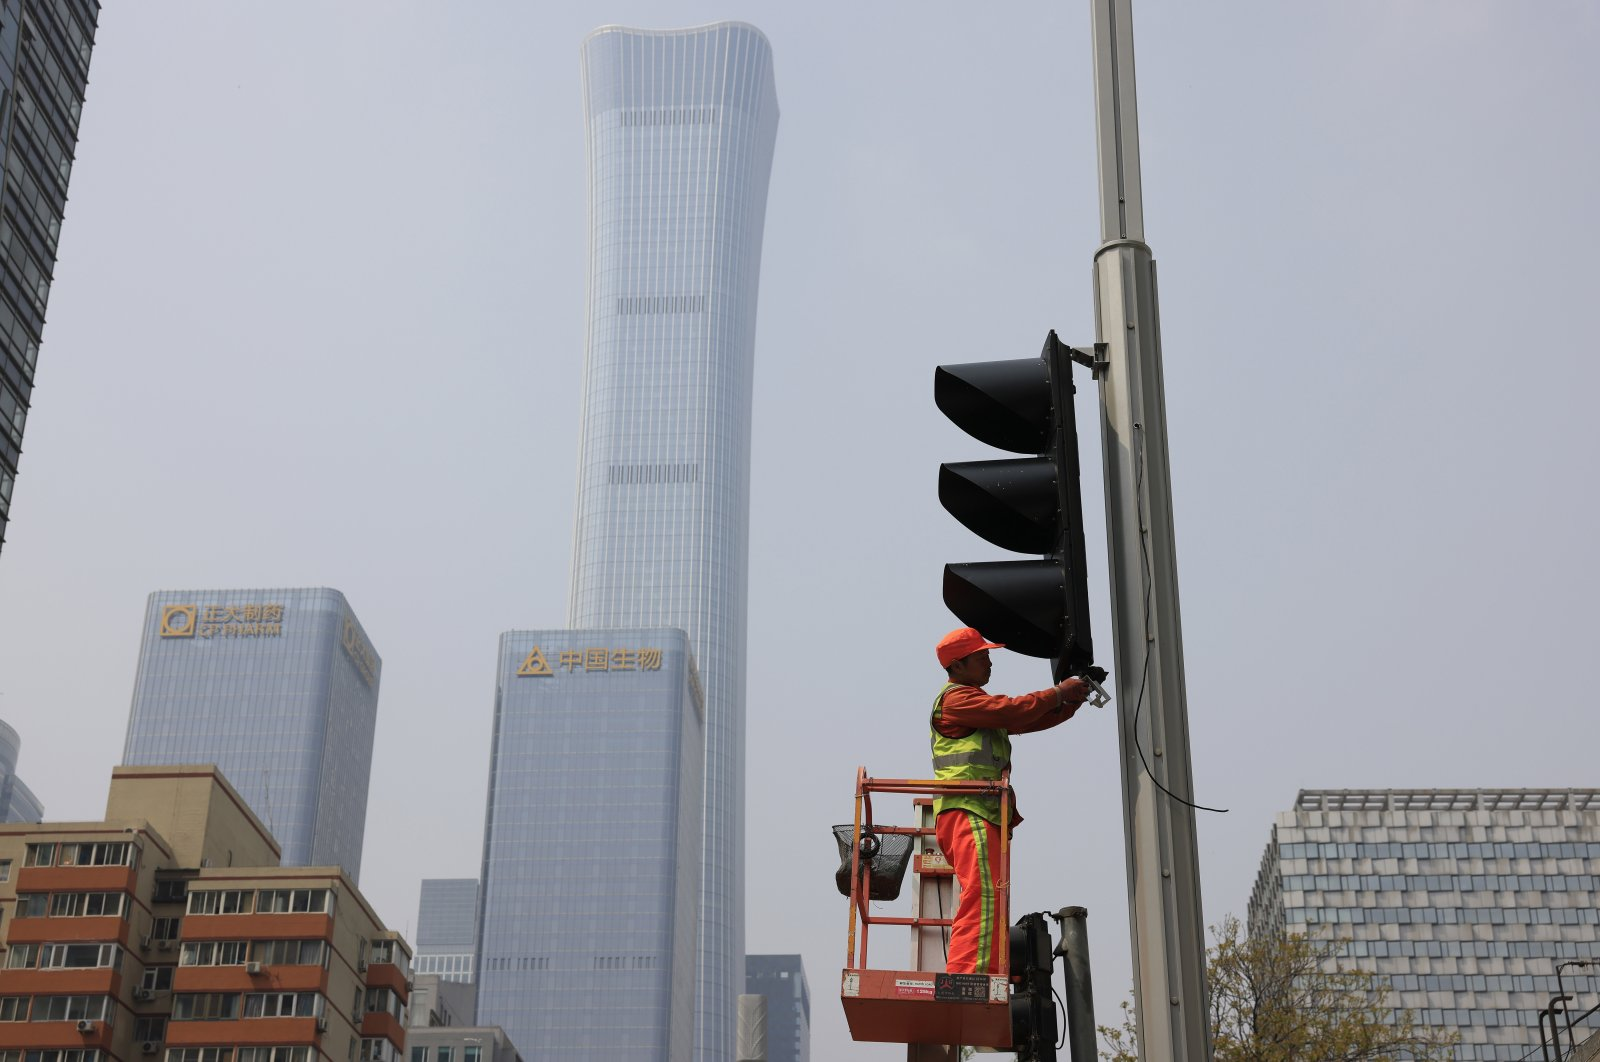 A worker installs new traffic lights at a junction in Beijing on Thursday, April 15, 2021. (AP Photo)